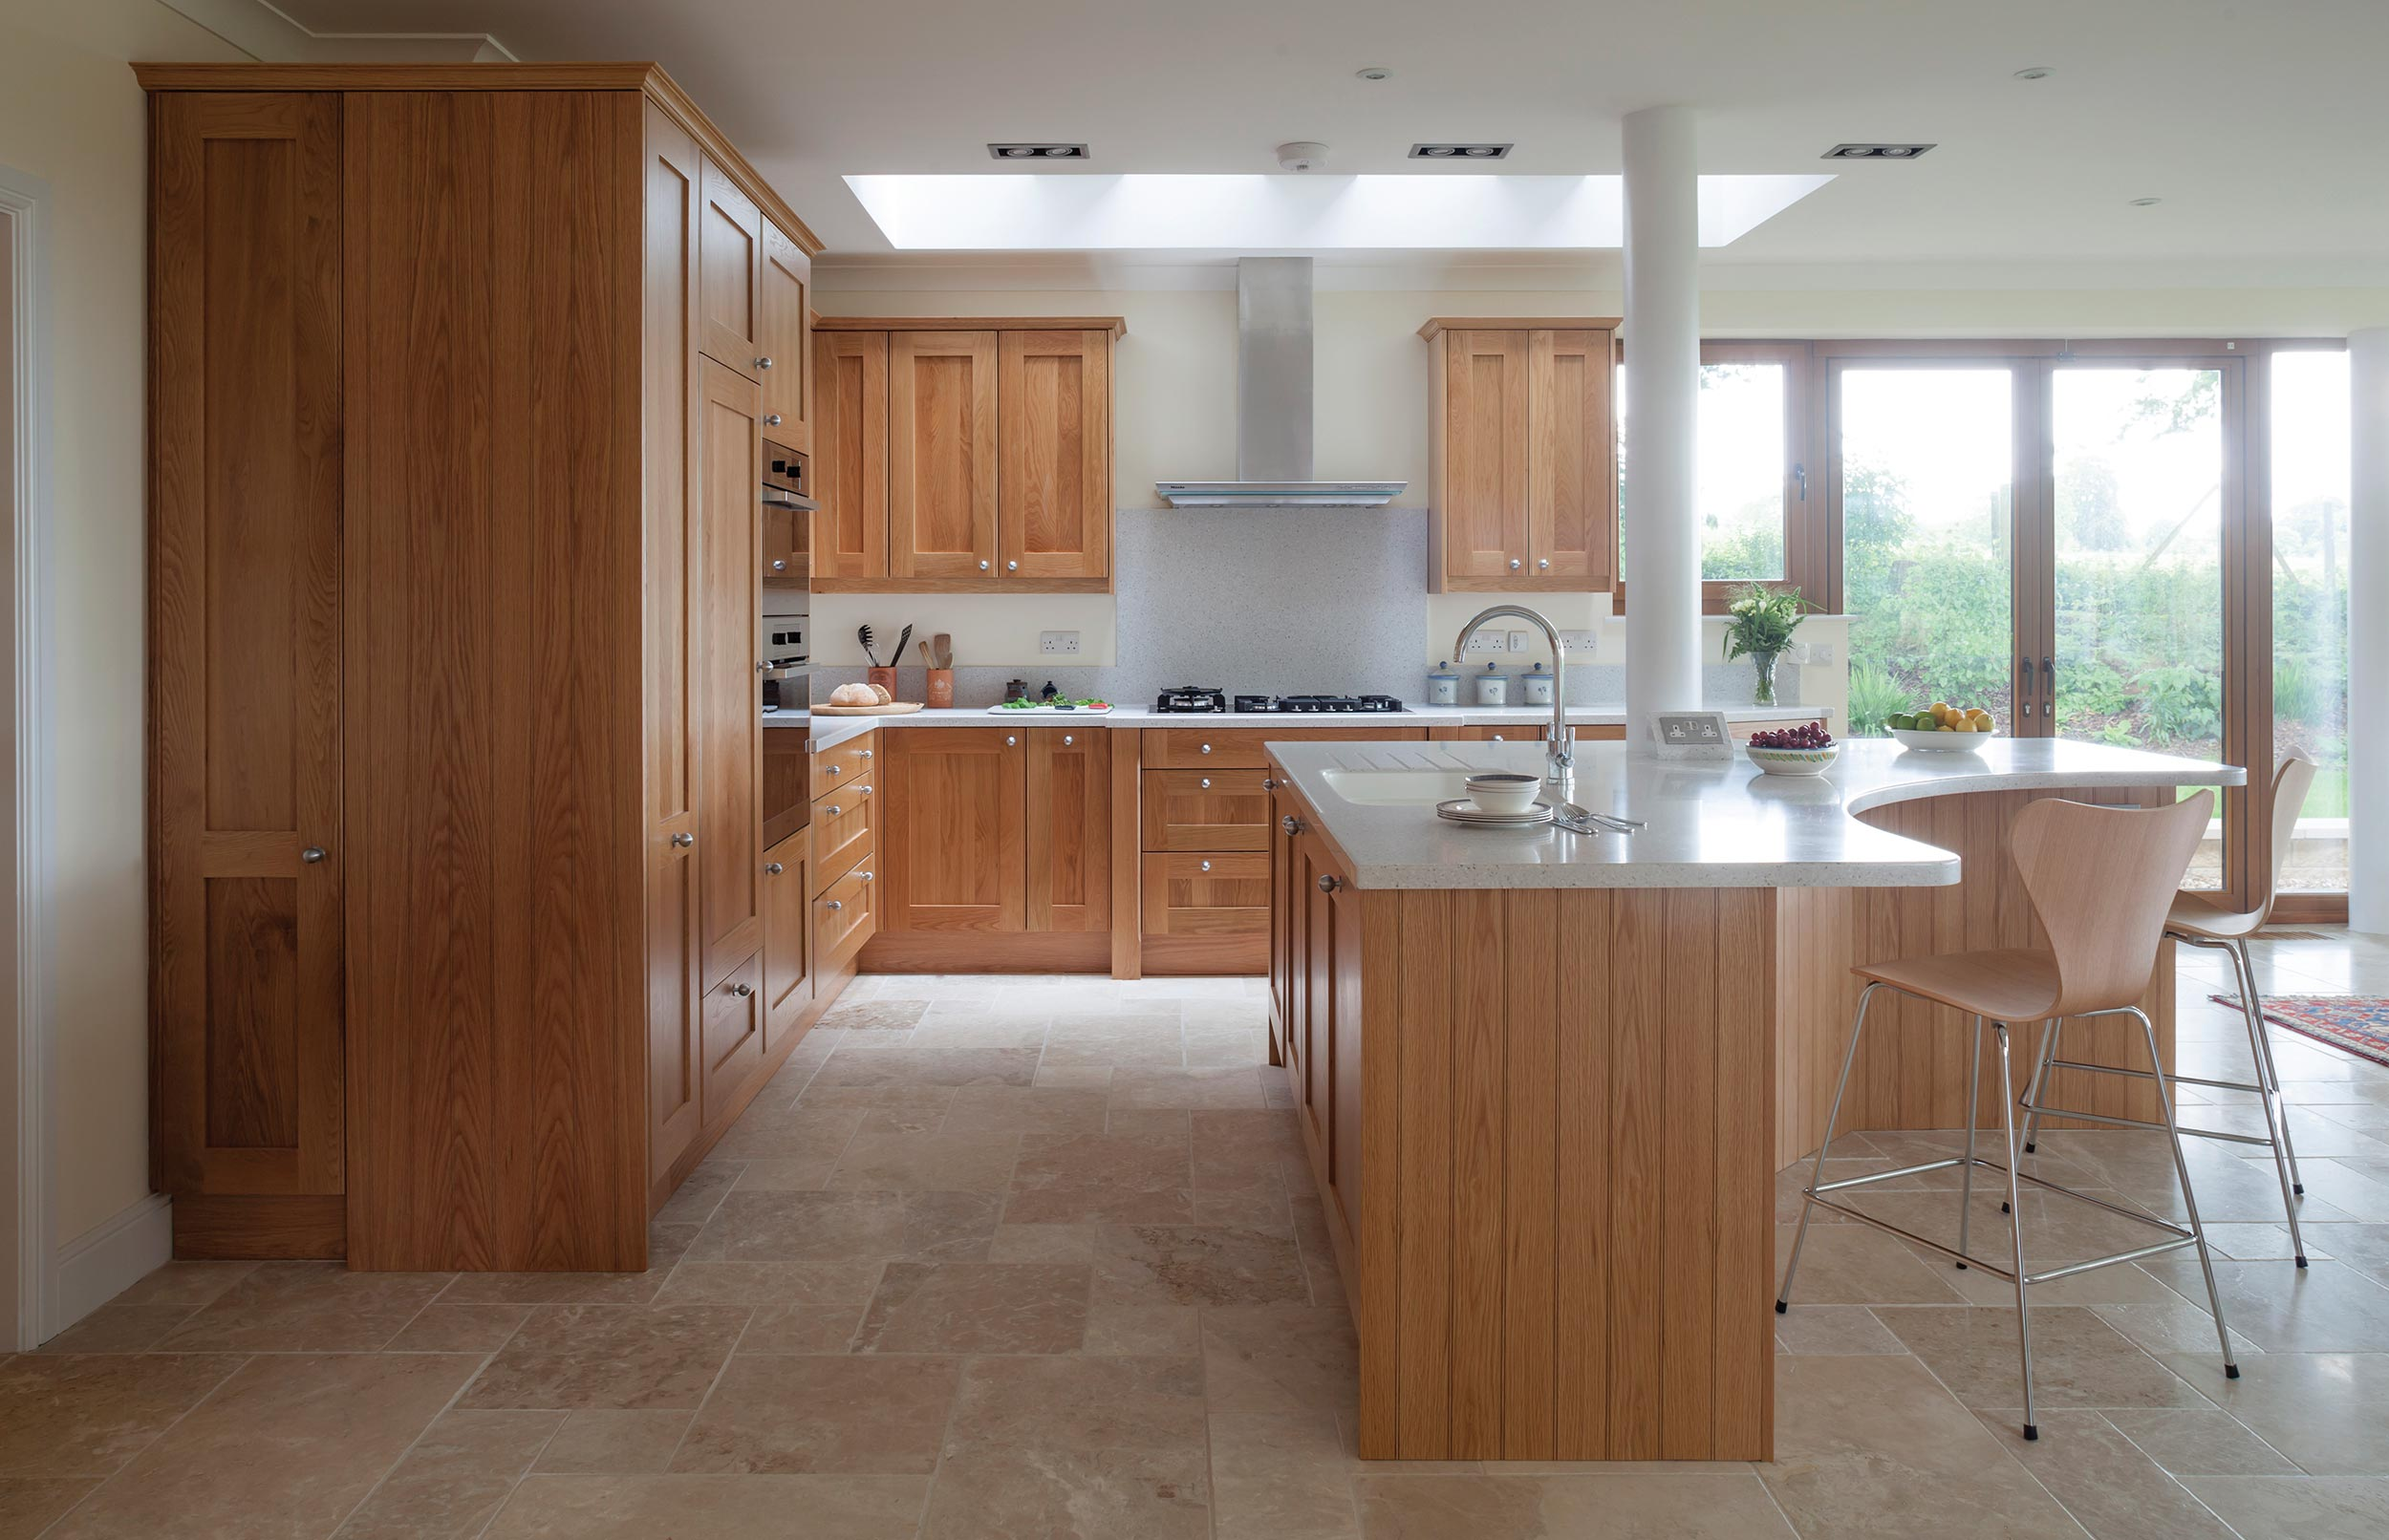 Extension Bespoke Kitchen - View 1